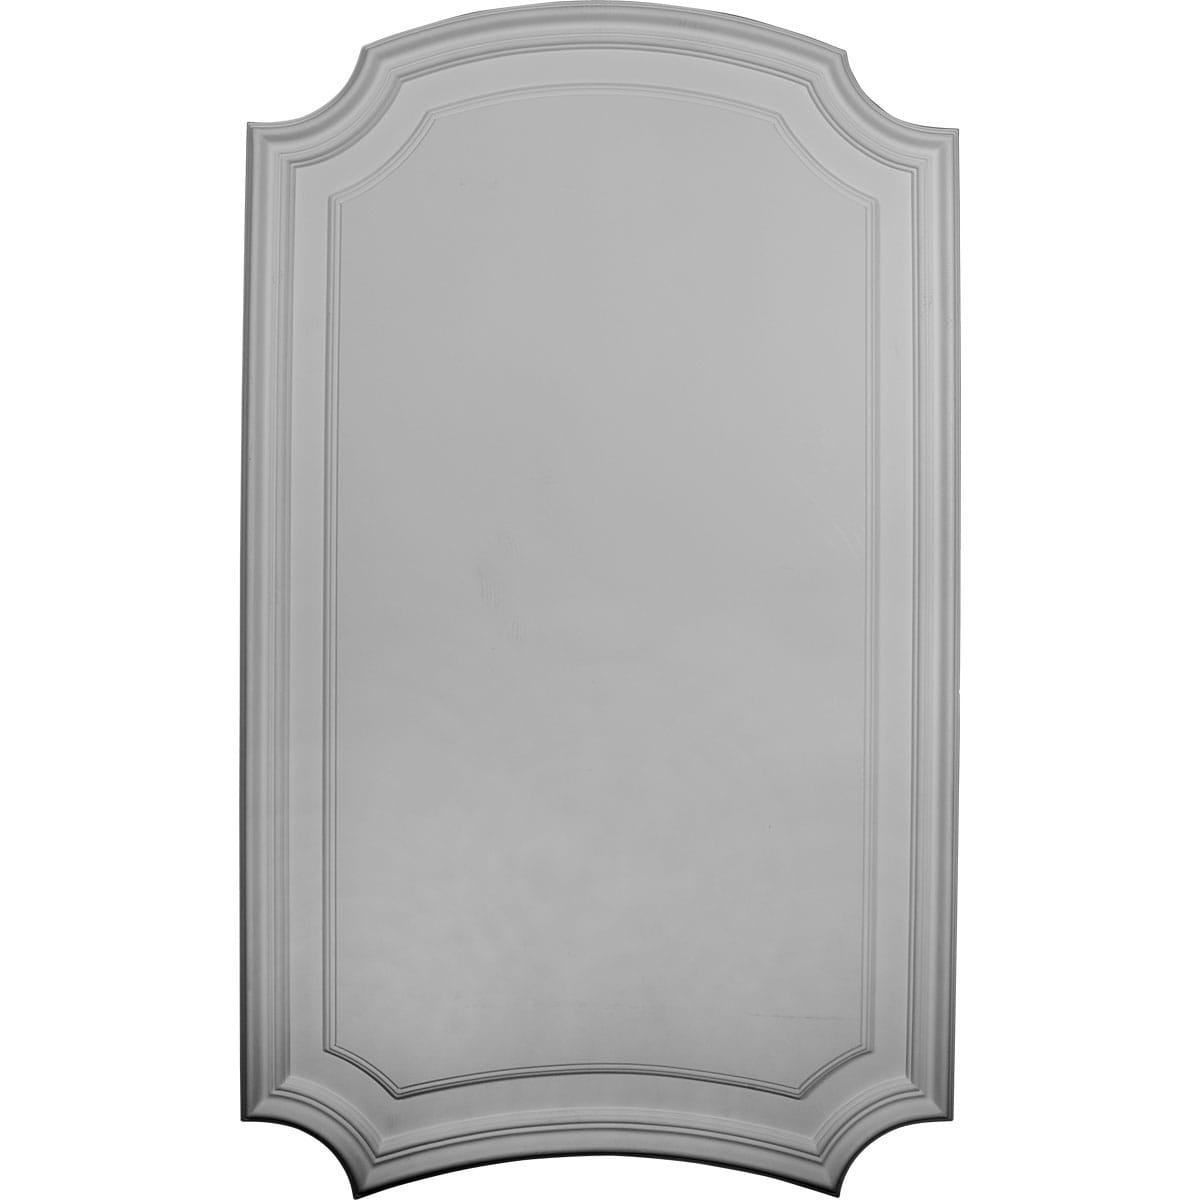 21 5/8W x 36 3/8H x 5/8P Legacy Deluxe Arch Wall/Door Panel (2-Pack)